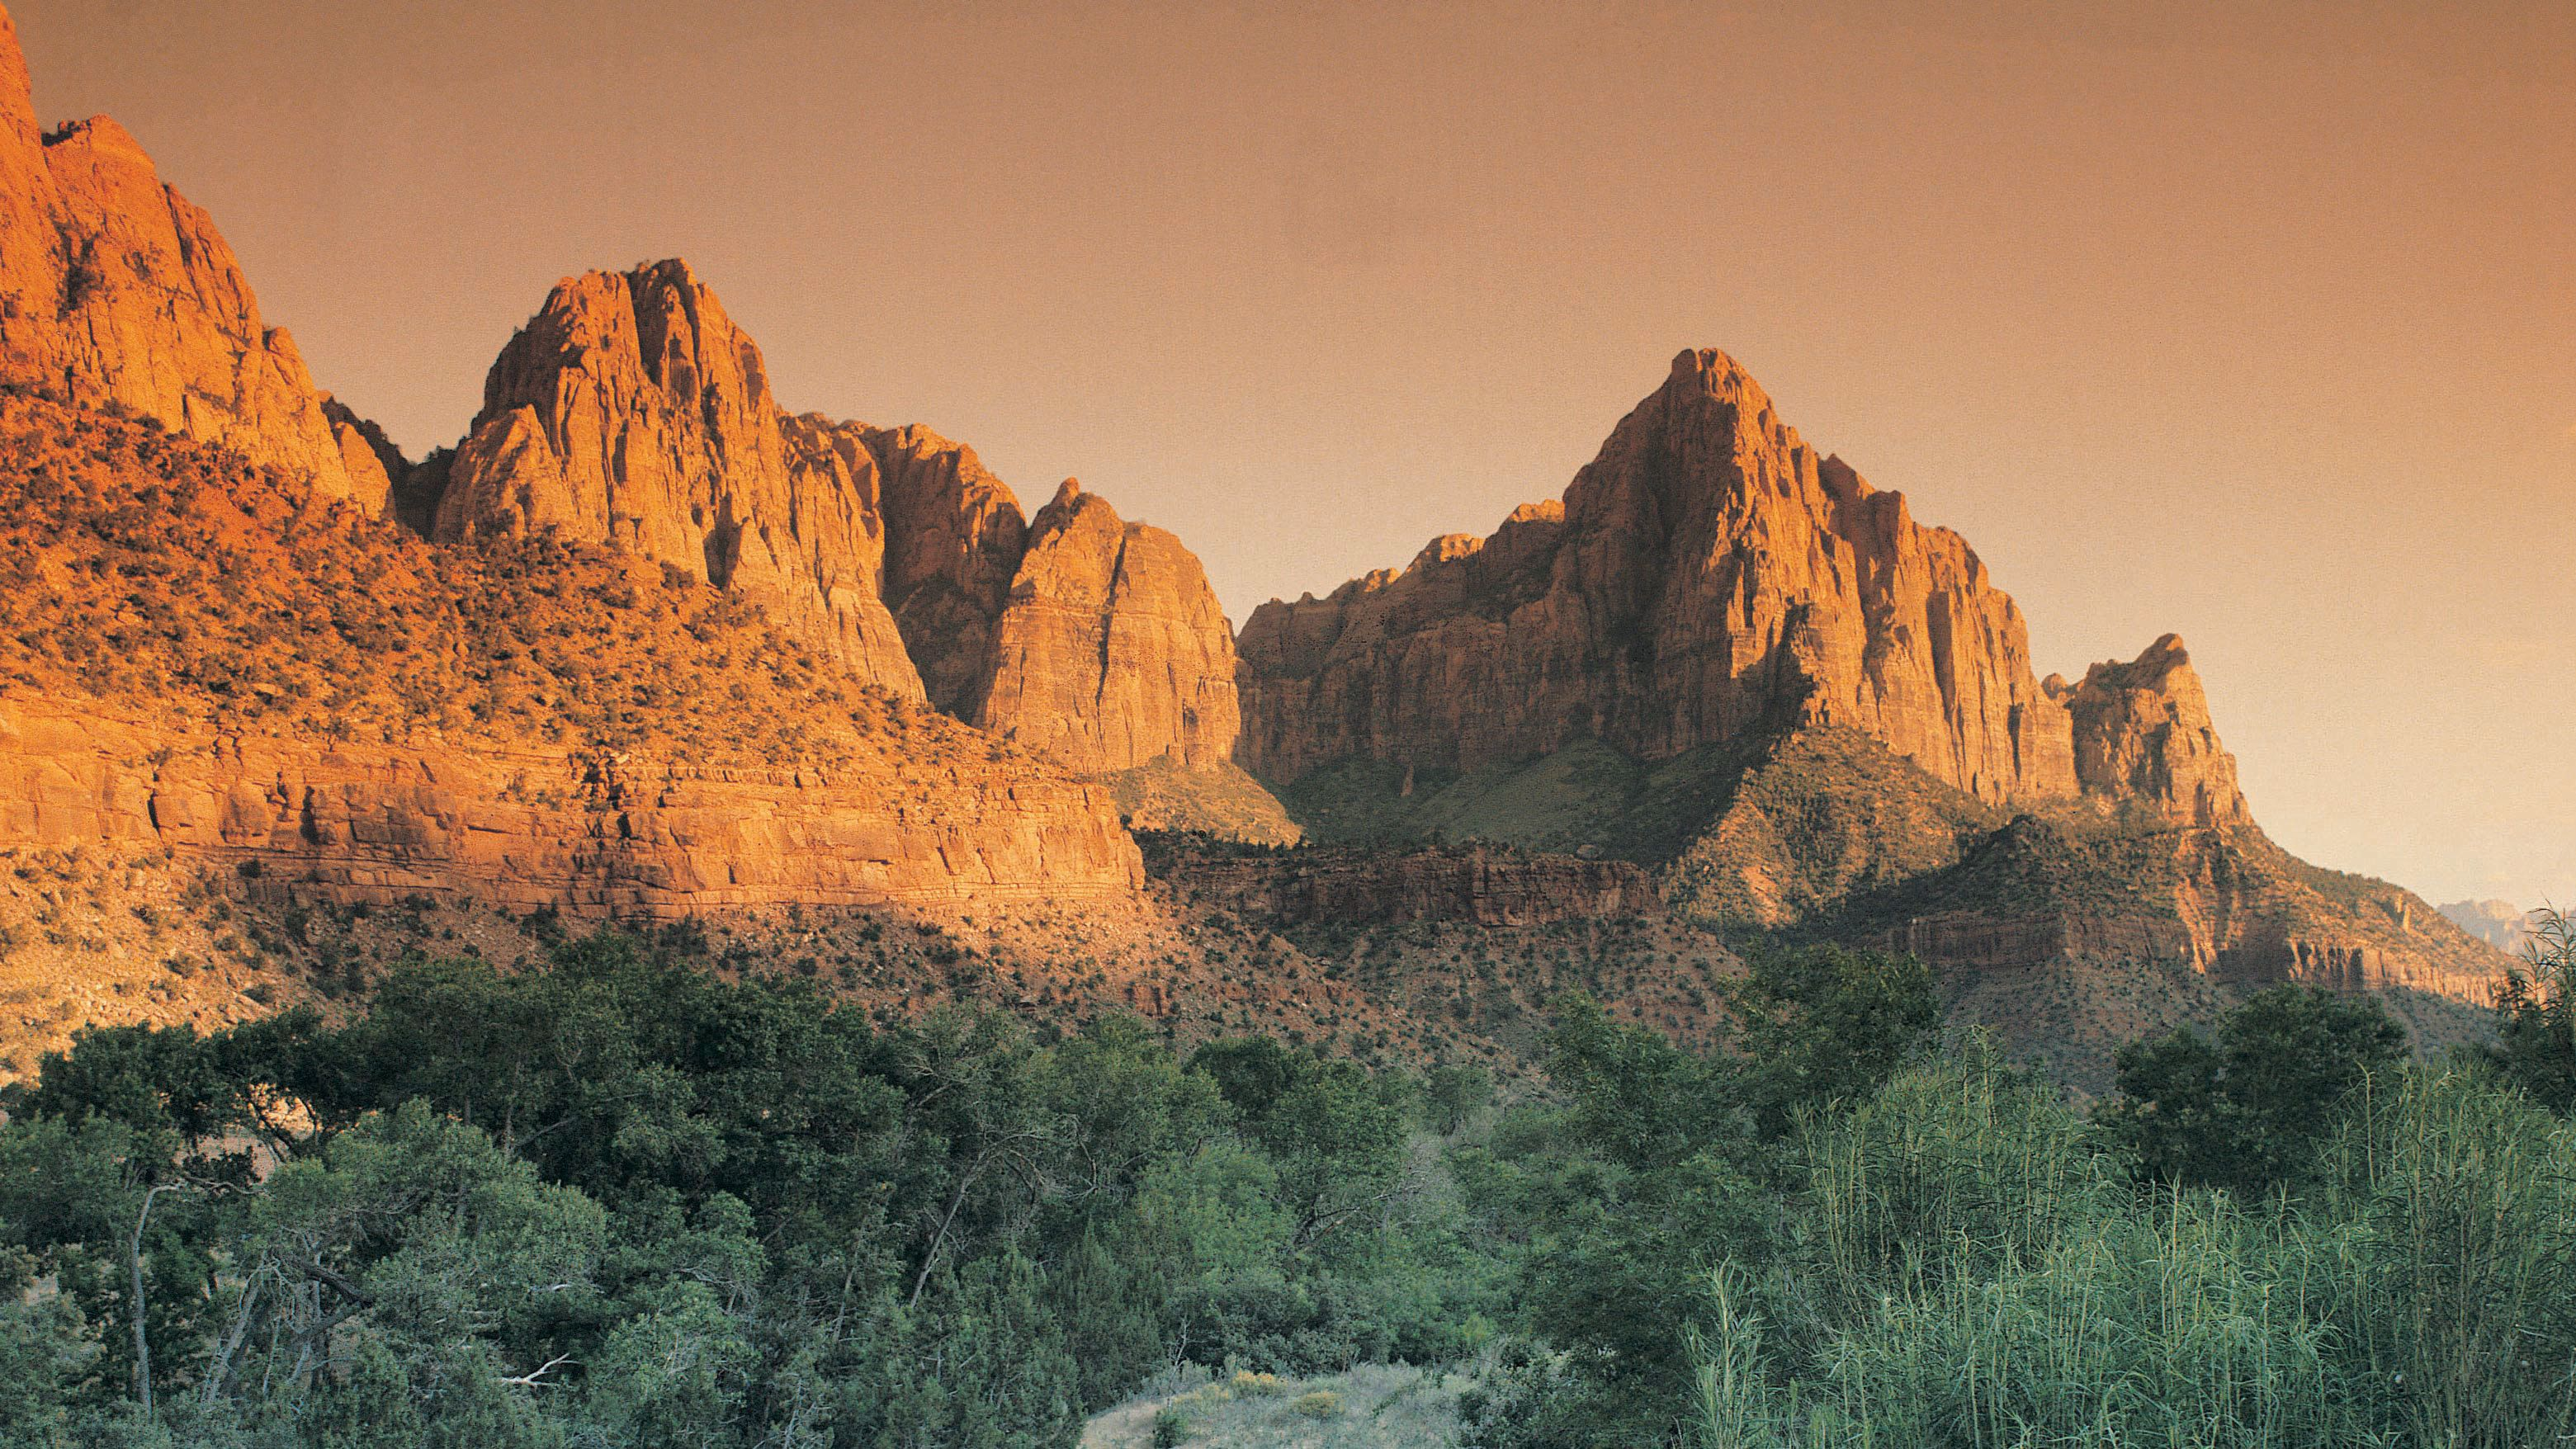 Rock formations of Zion National Park at sunset